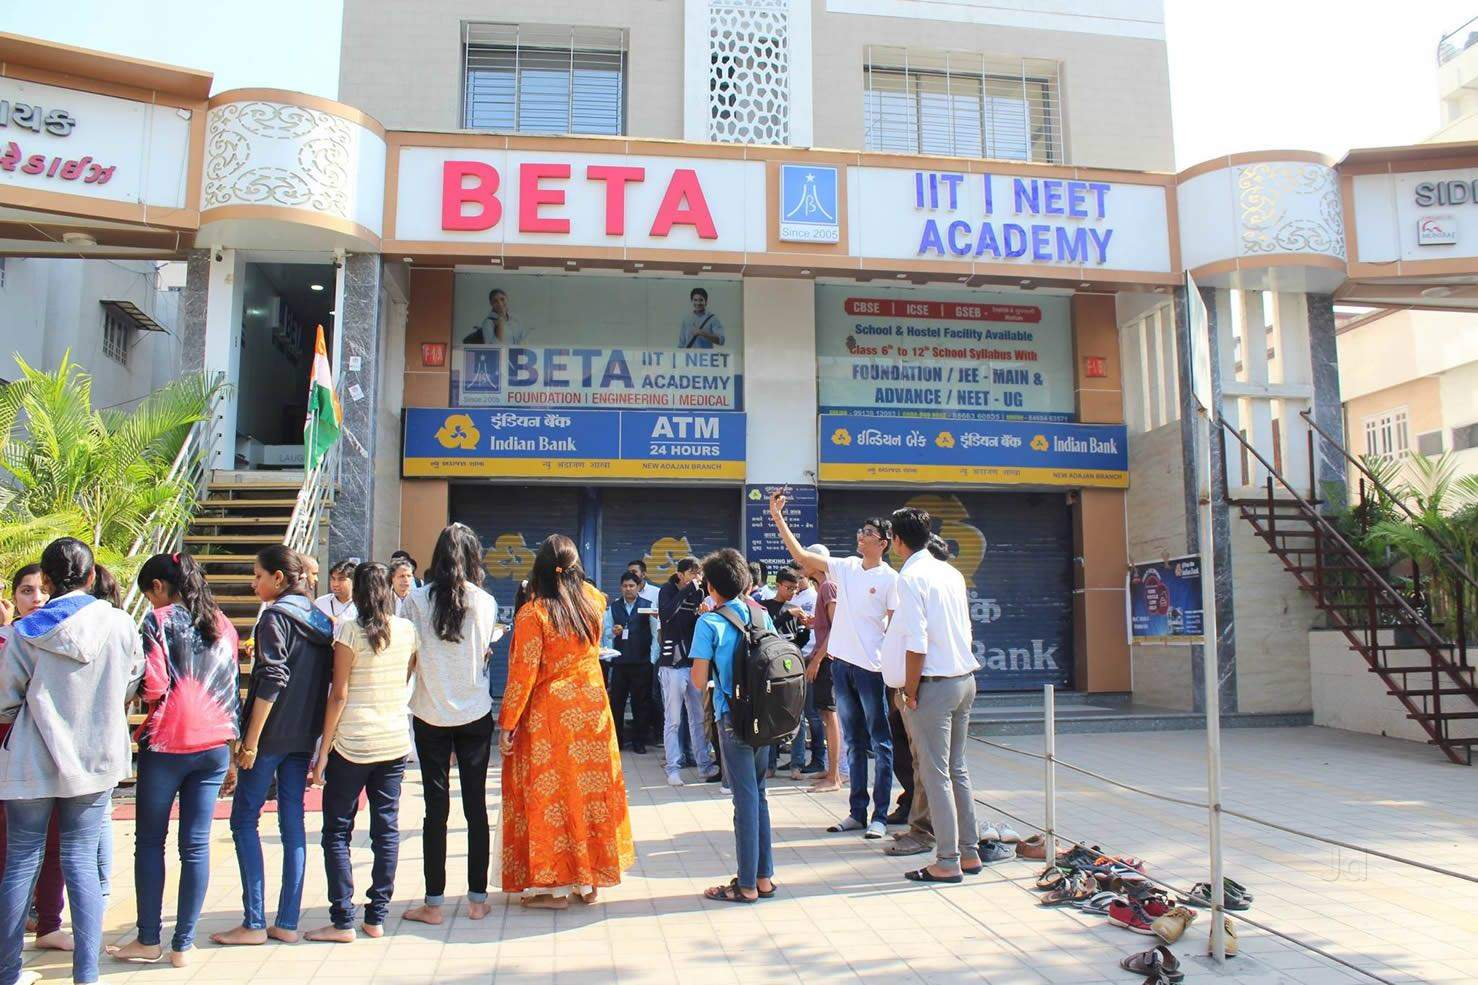 Top Tutorials For Jee in Varachha Road - Best Coaching Classes For